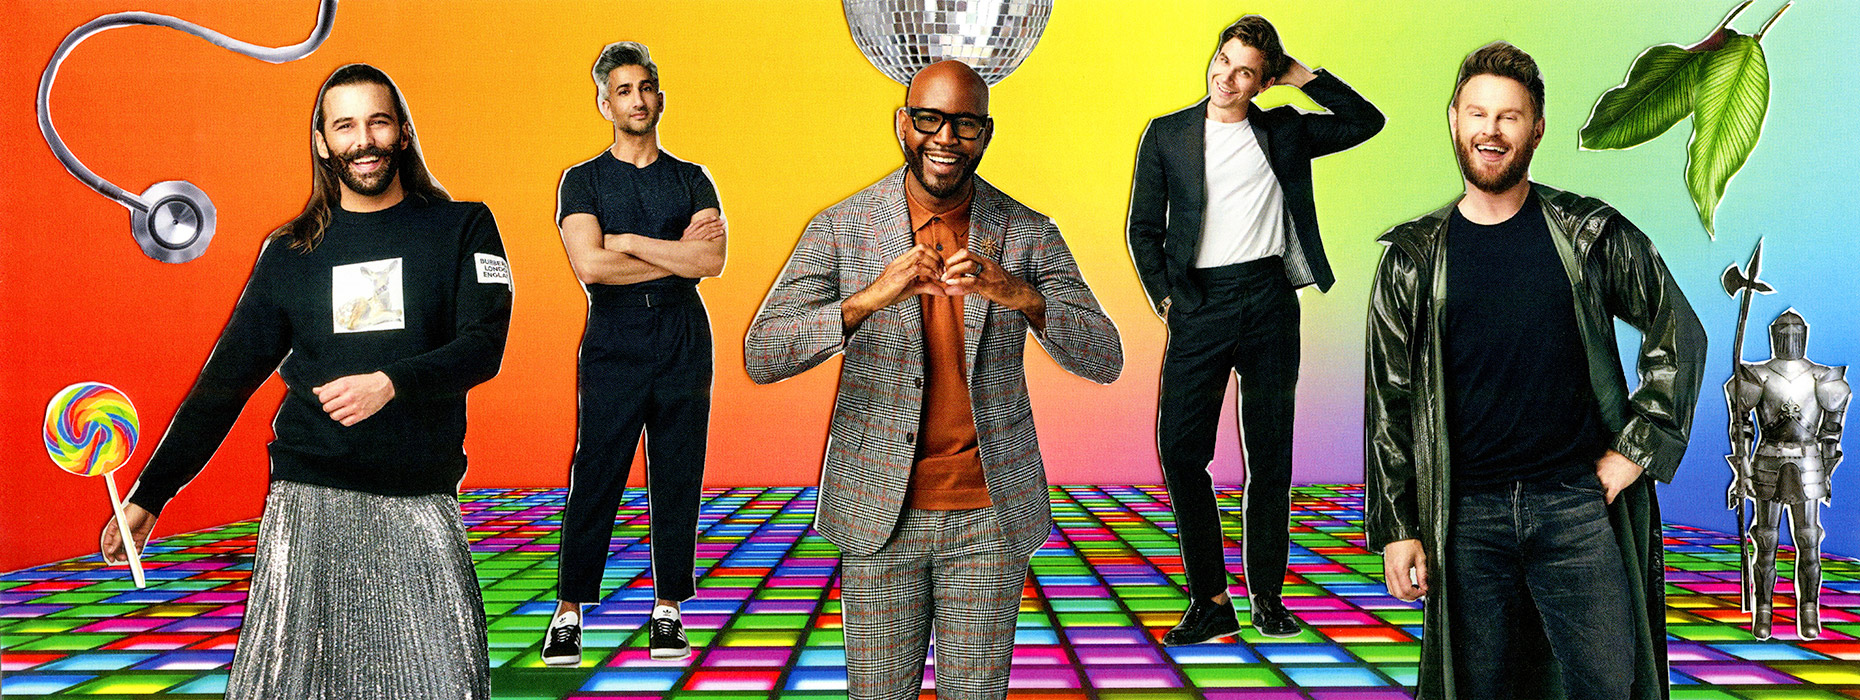 01_Header_QueerEye